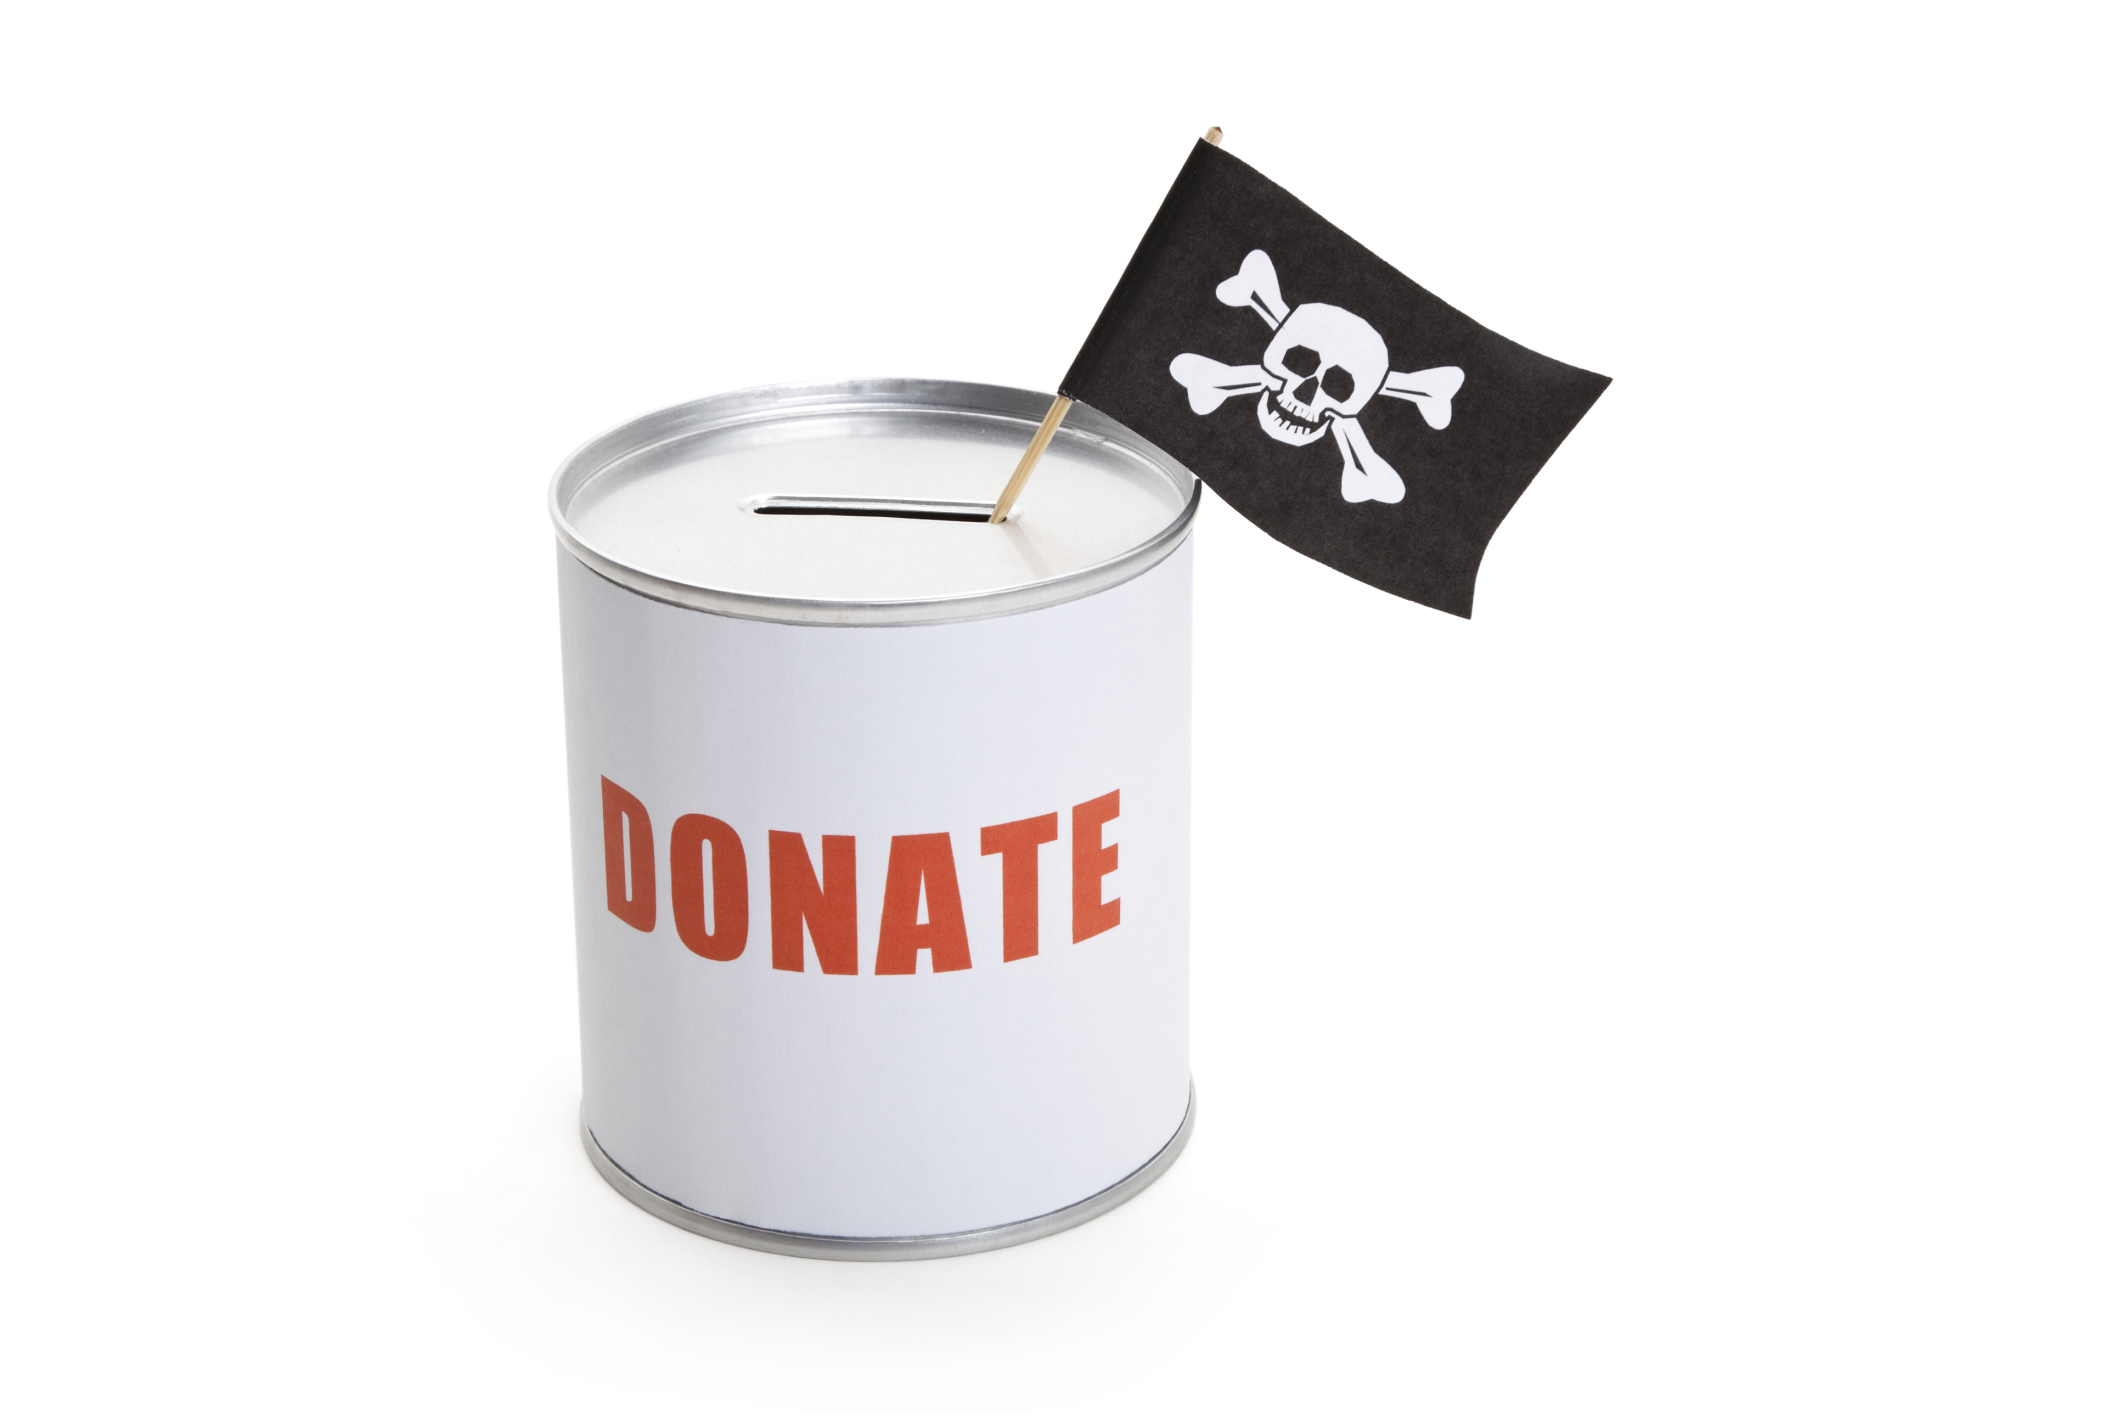 Why credit thieves love giving to charity | WePay Blog